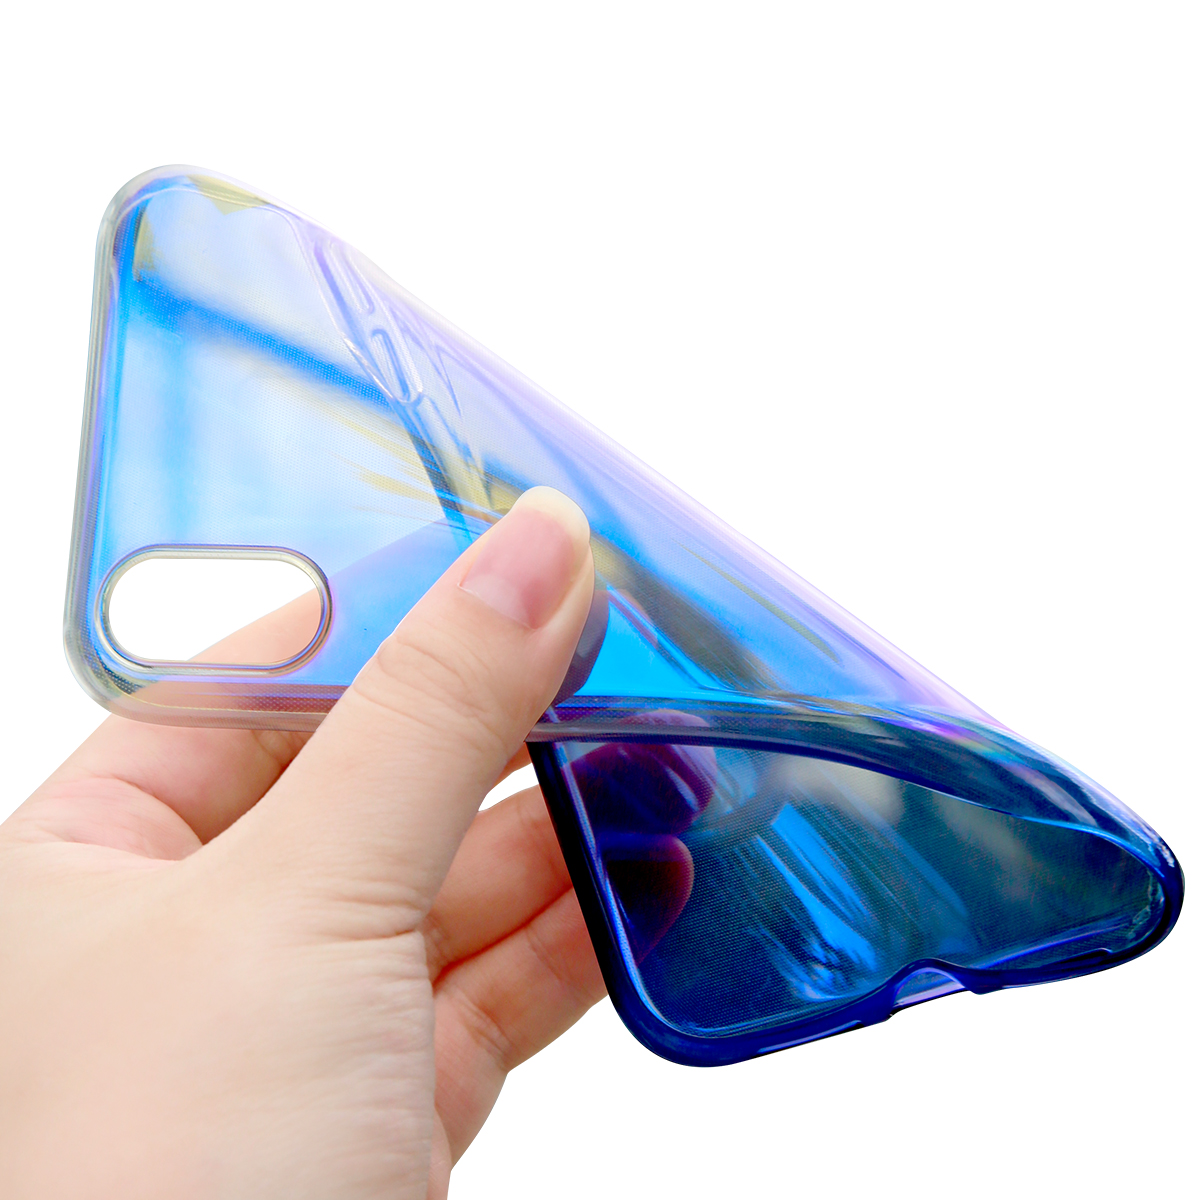 Baseus Protective Case For iPhone XR Gradient Glow Shockproof Soft TPU Back Cover